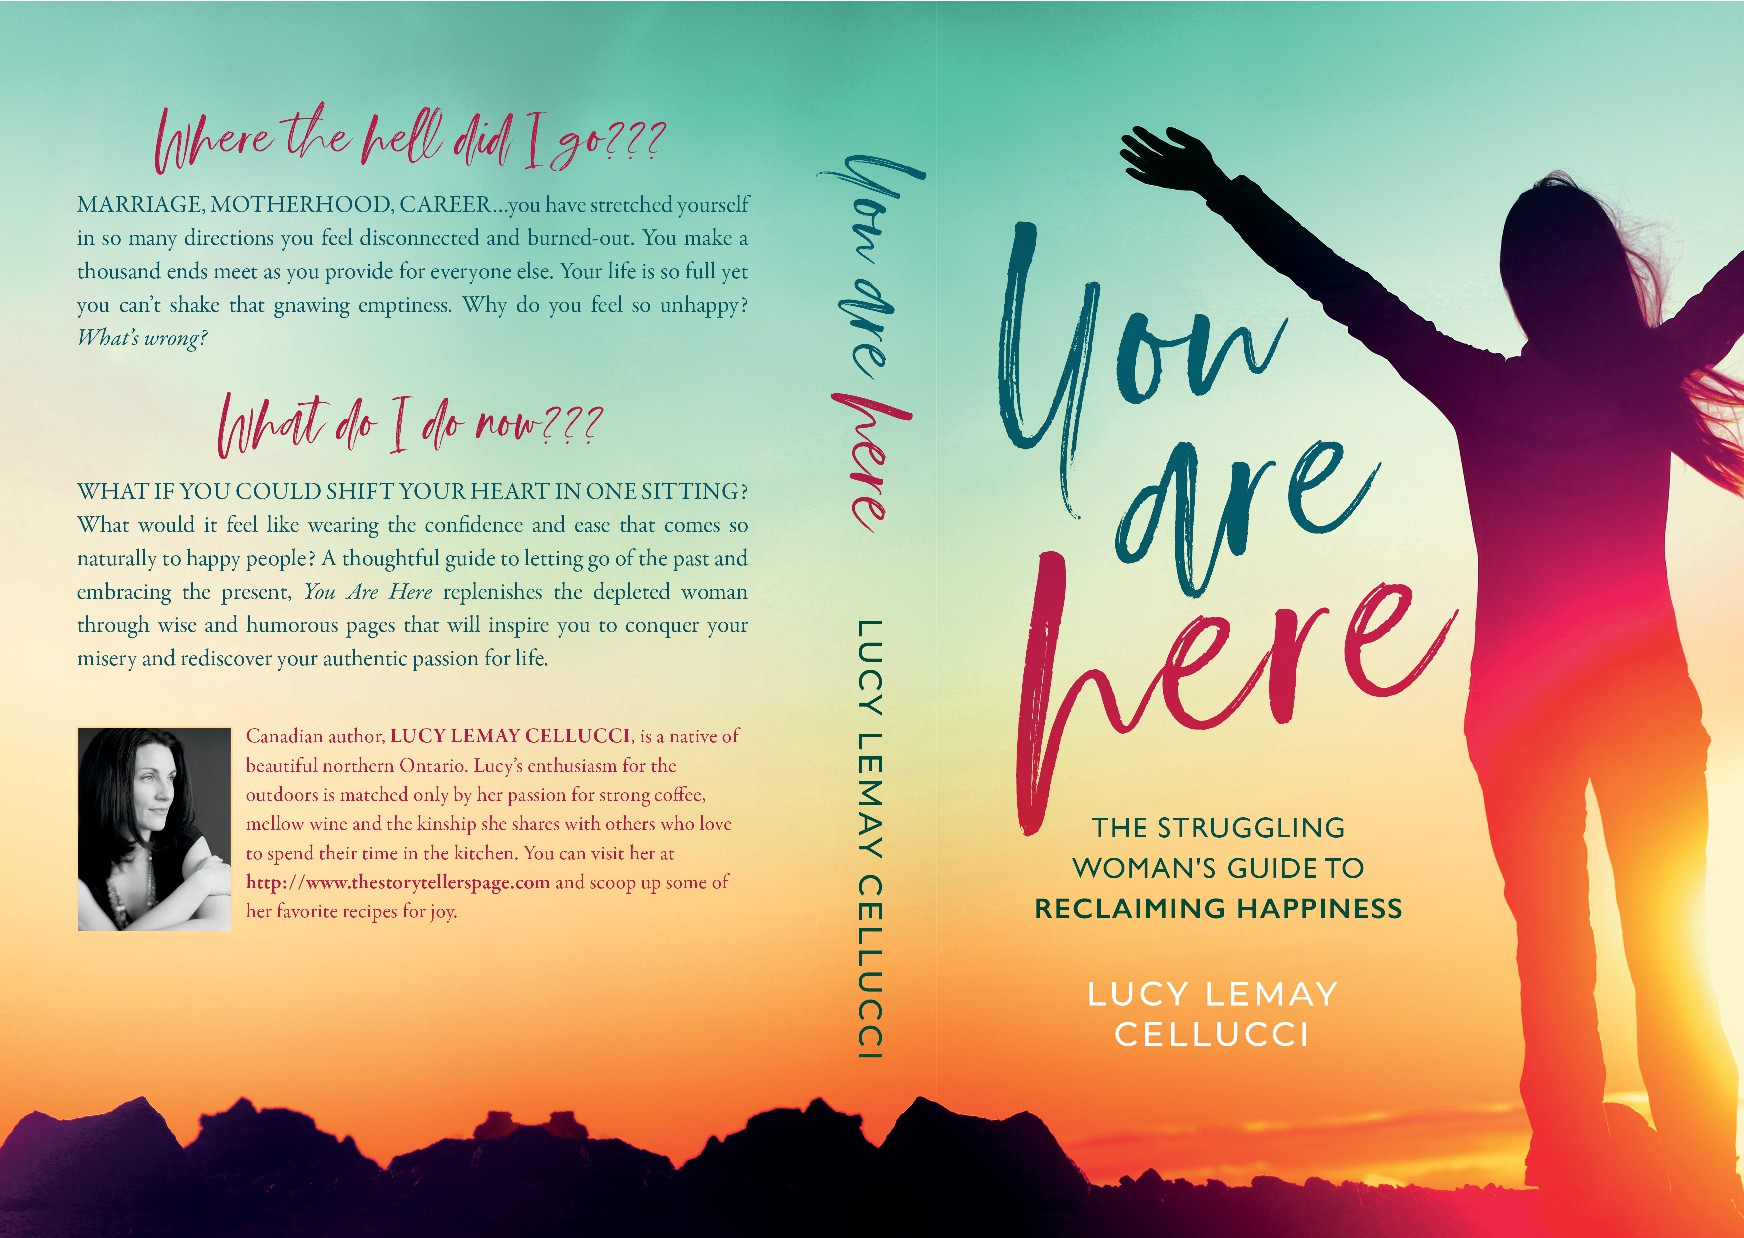 Create a powerful, eye-catching cover for a self-help book